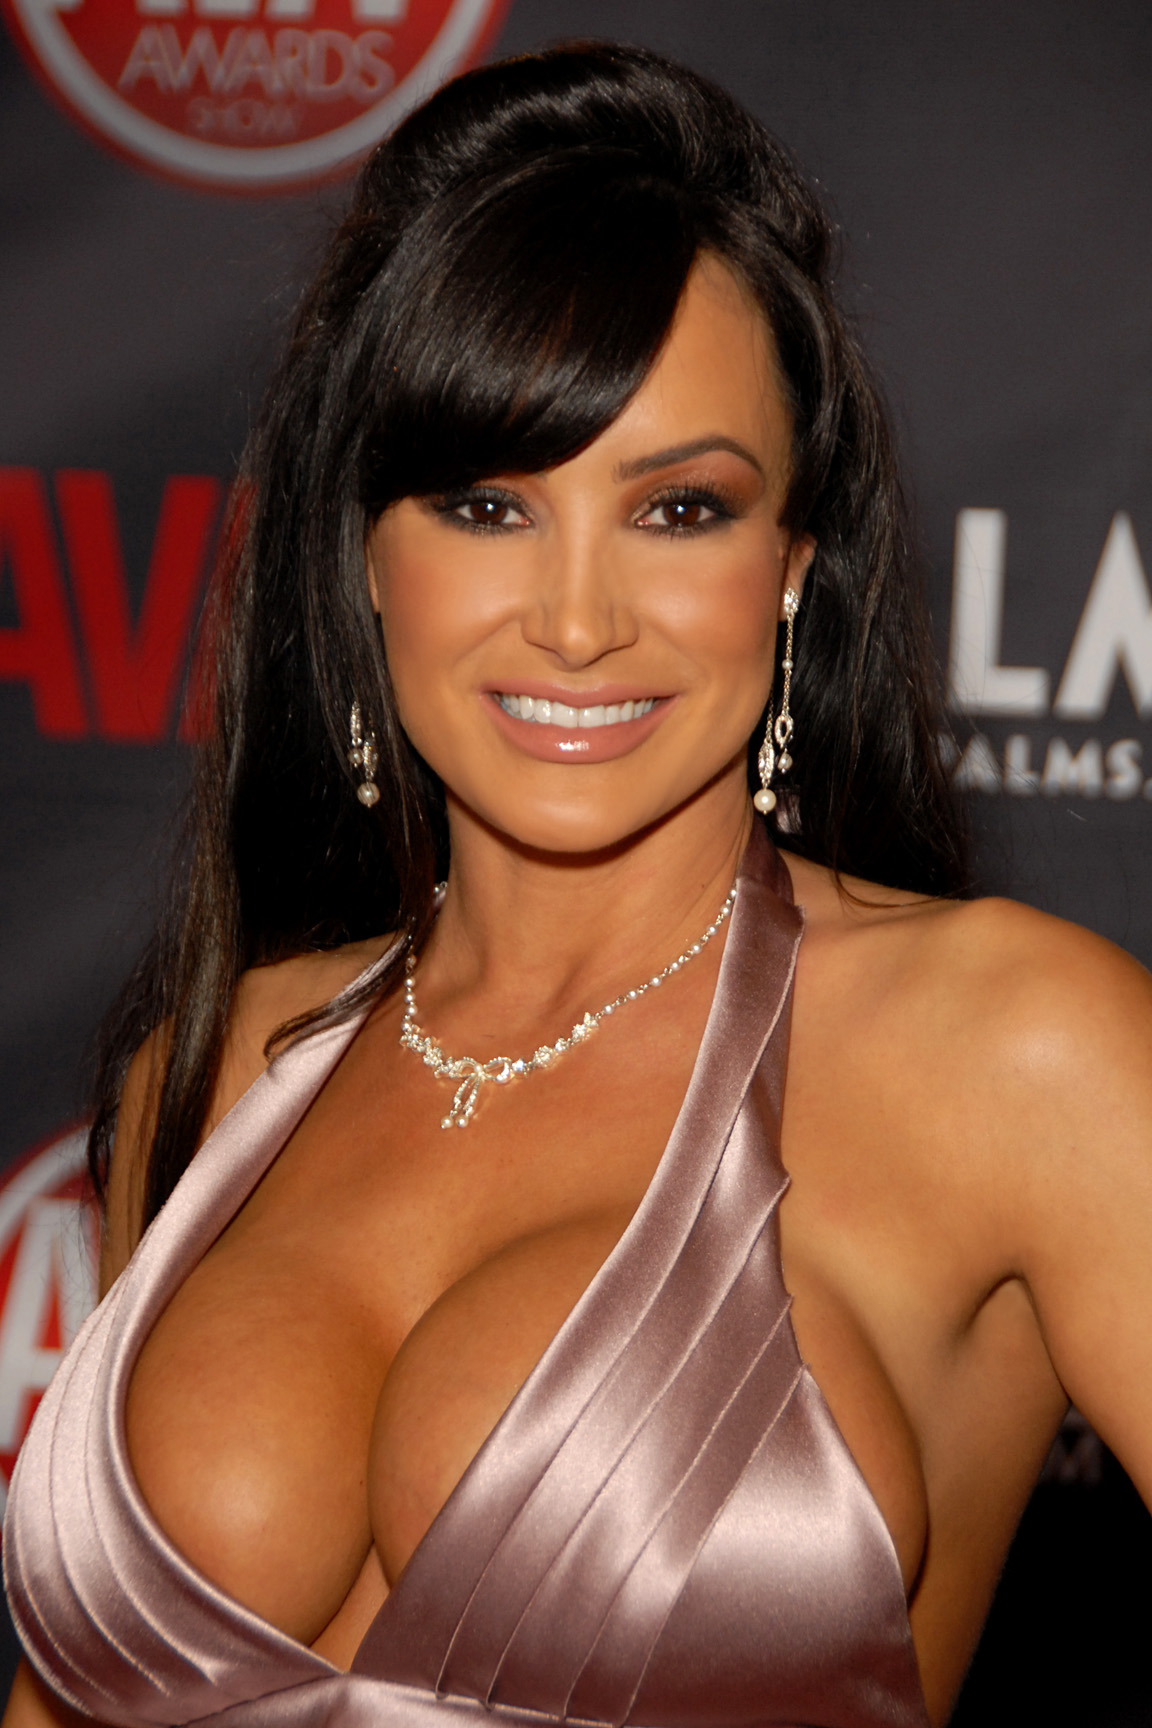 Carri Lee Porn Top lisa ann — wikipédia